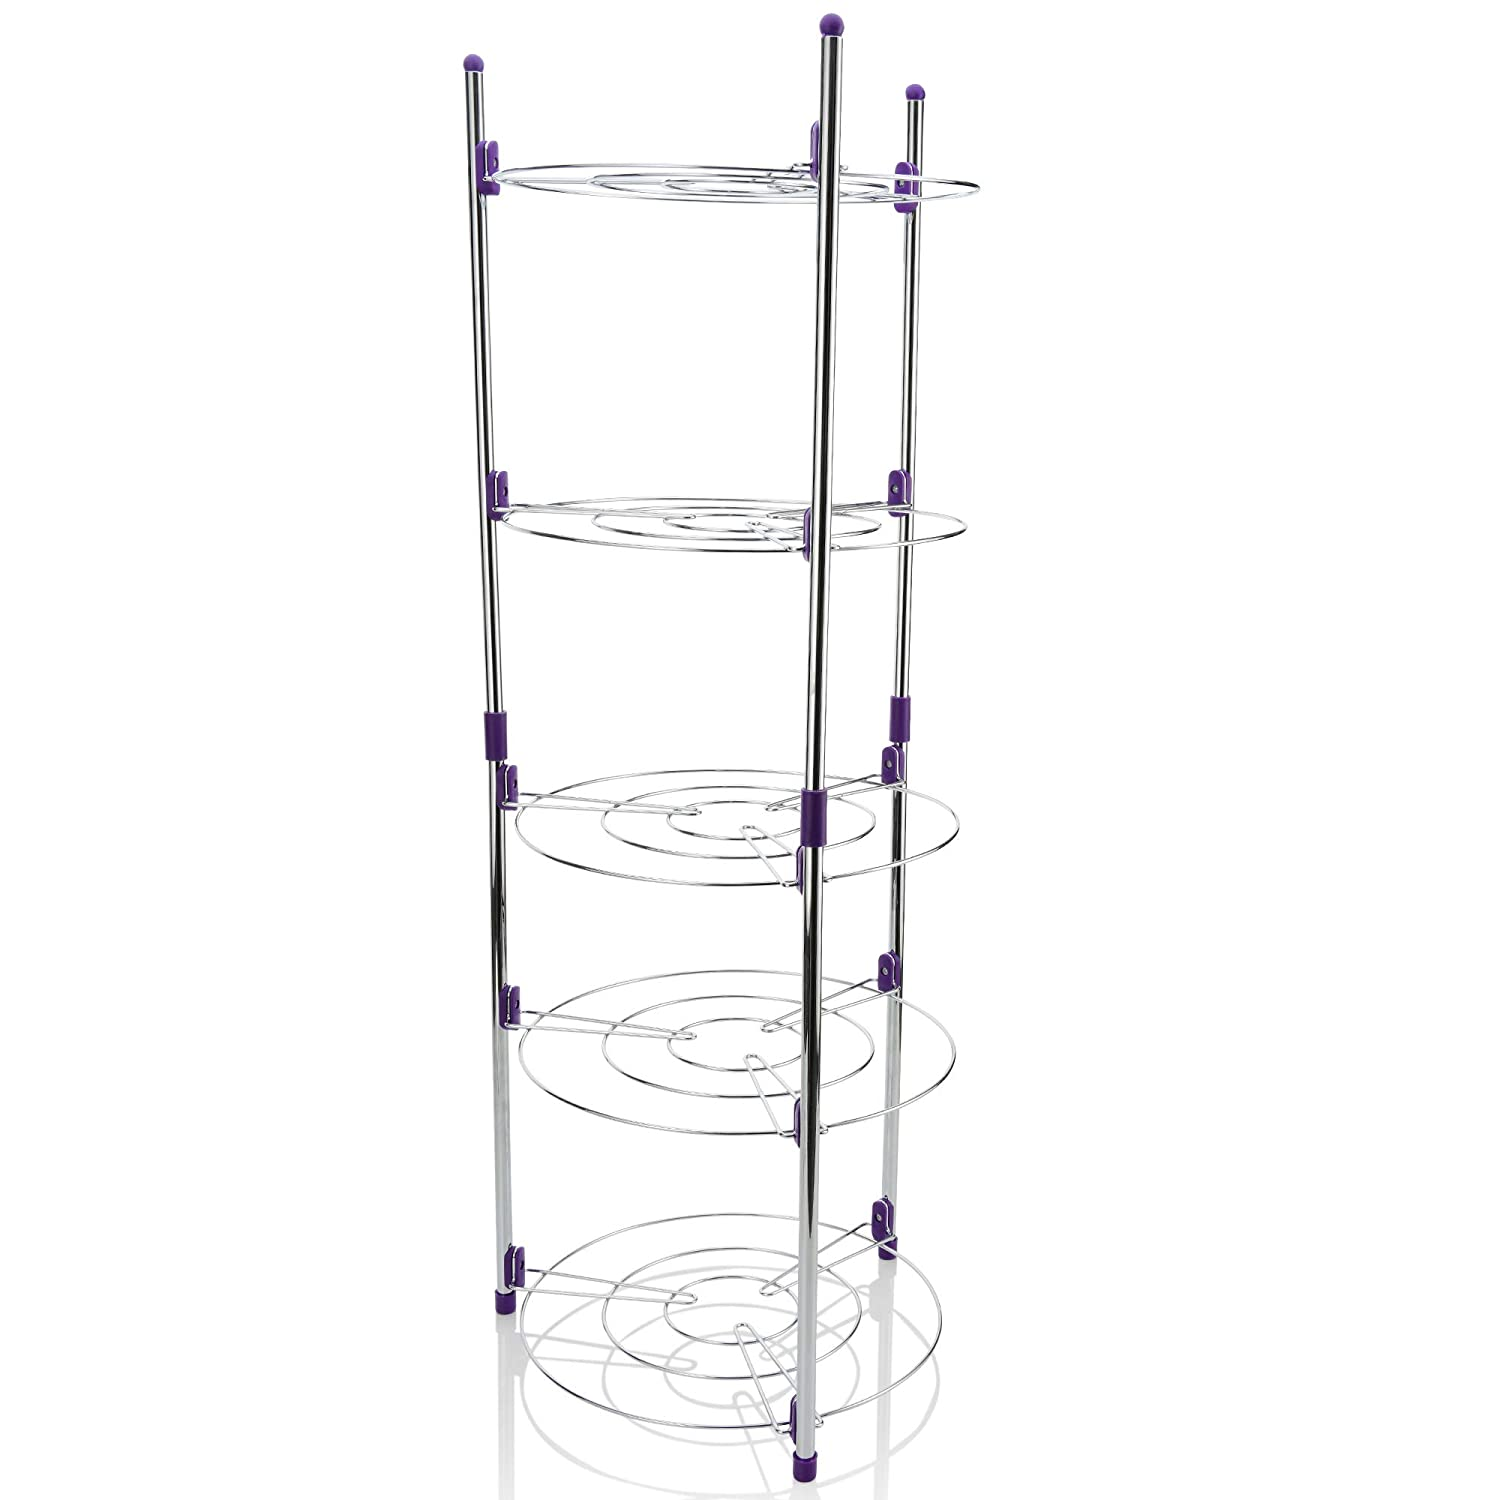 EBH Chrome 5 Tier Round Shelf Storage Tower. Instant Shelves for Storage of Instapot Crock Pot Stock Pot Dish Pan Lids and More Includes 5 S-Hooks for Small Items